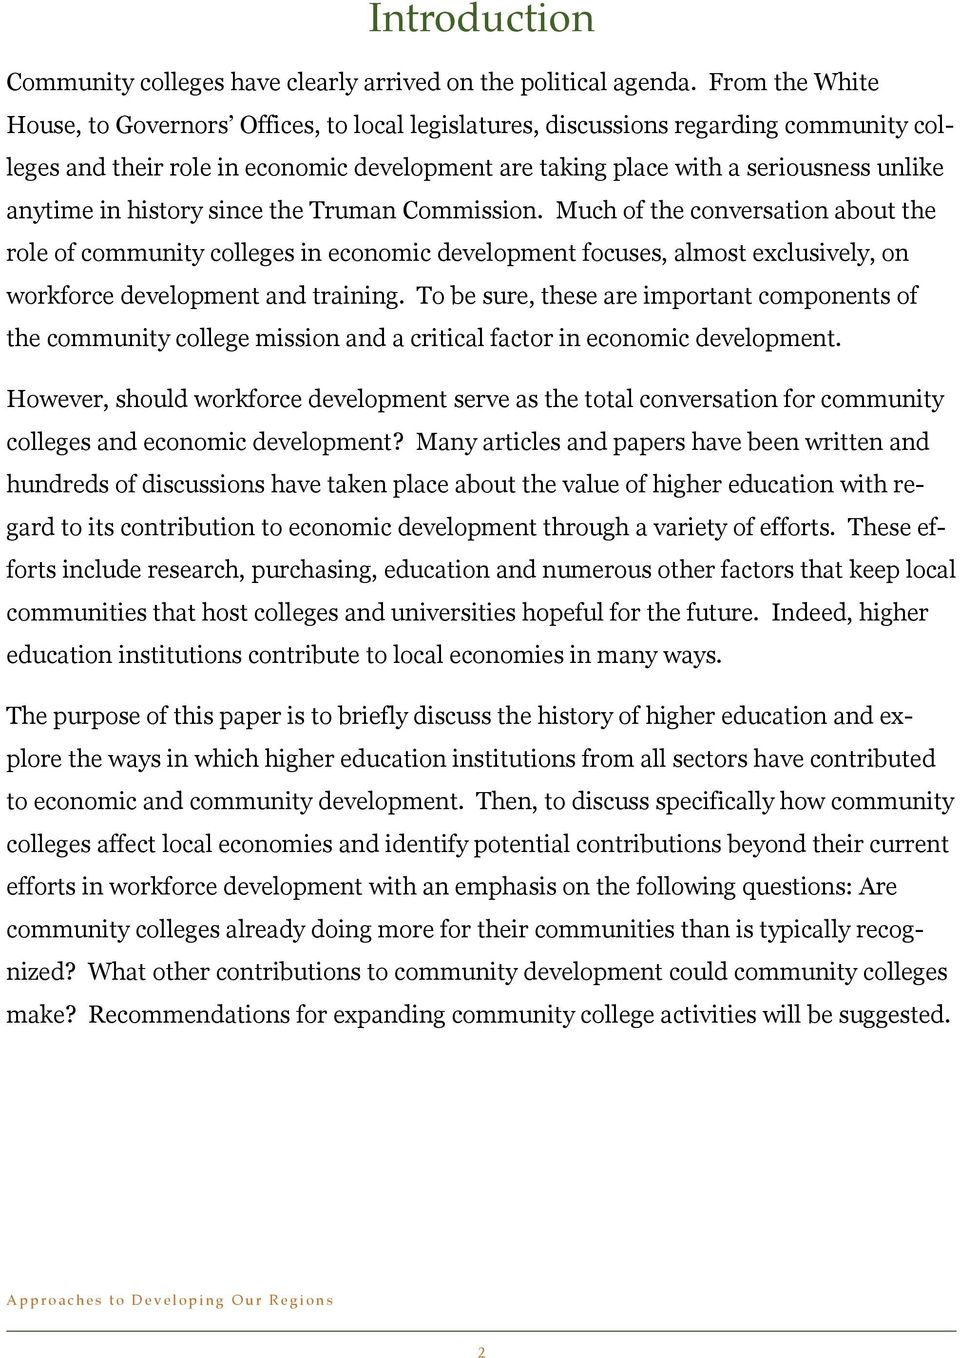 in history since the Truman Commission. Much of the conversation about the role of community colleges in economic development focuses, almost exclusively, on workforce development and training.